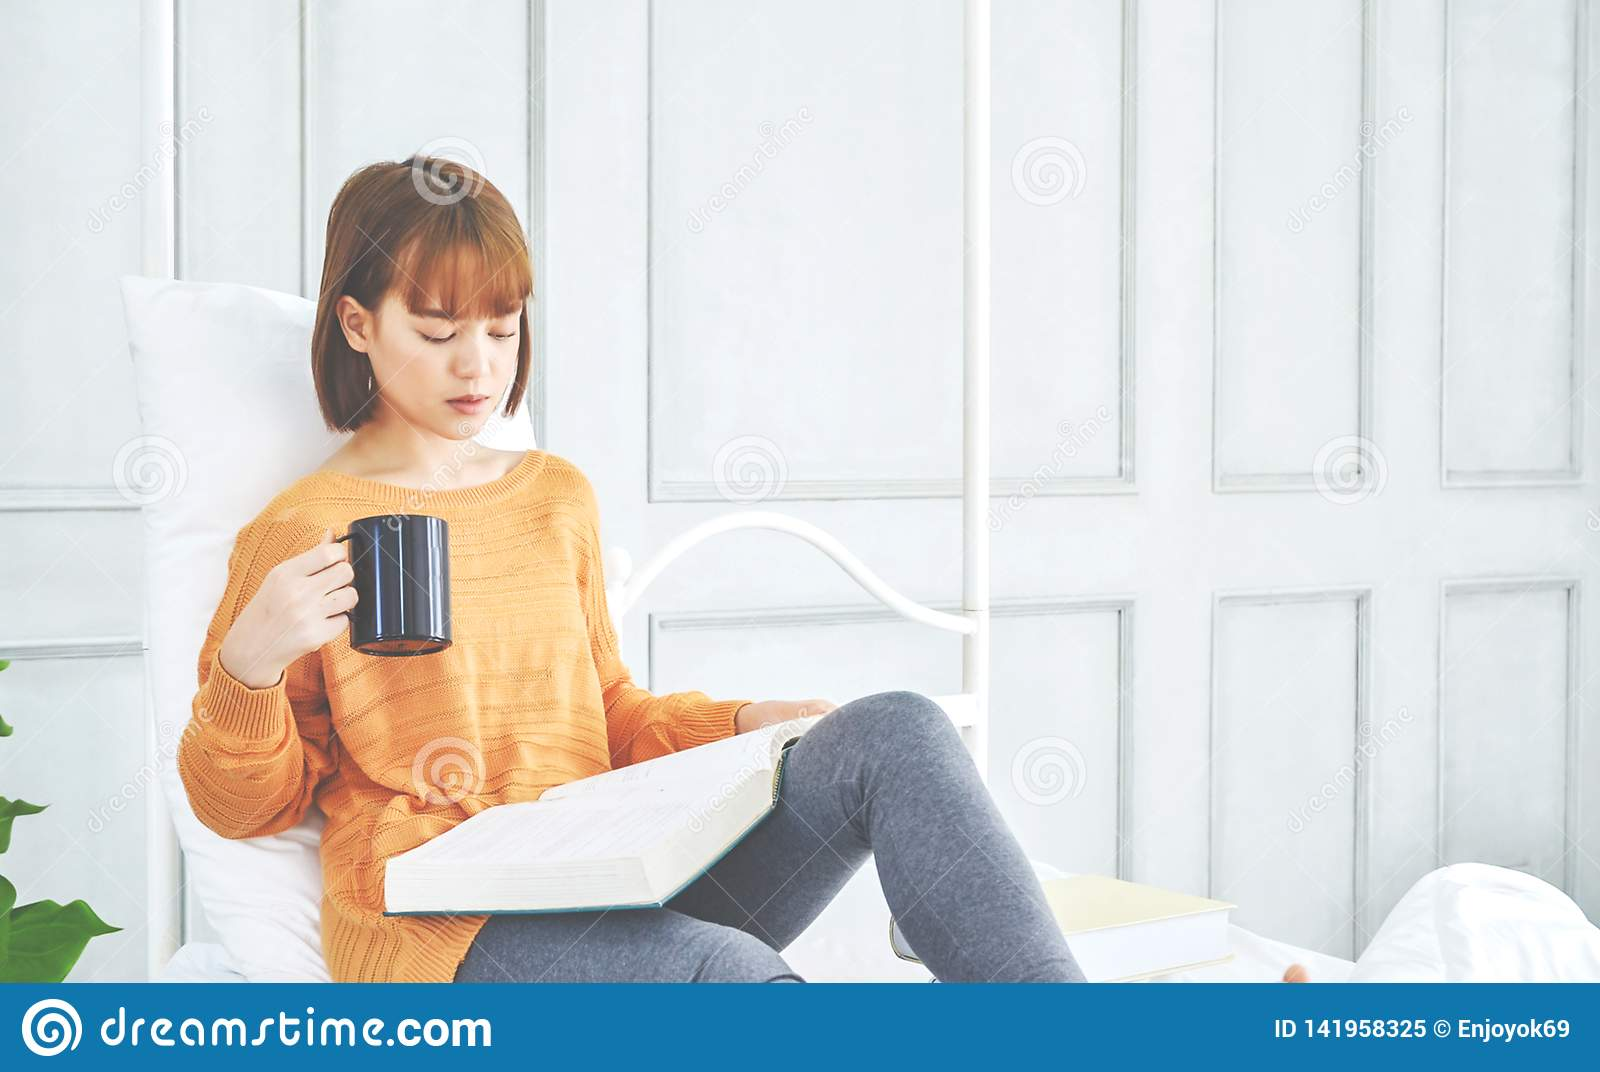 Women are reading a book holding a black glass.